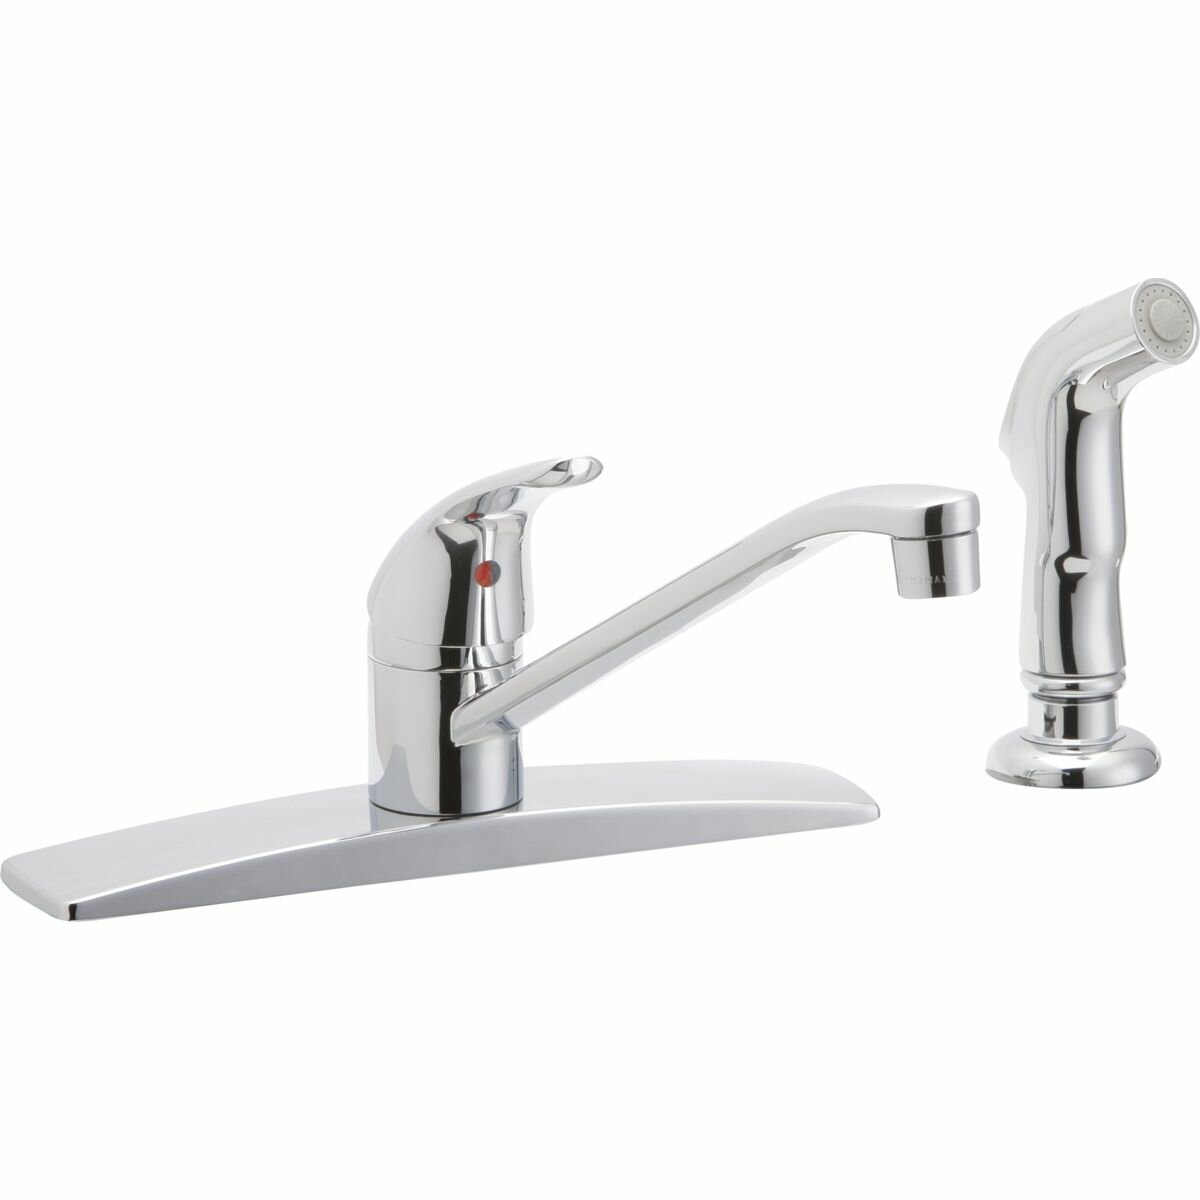 elkay single handle deck mount kitchen faucet with side spray